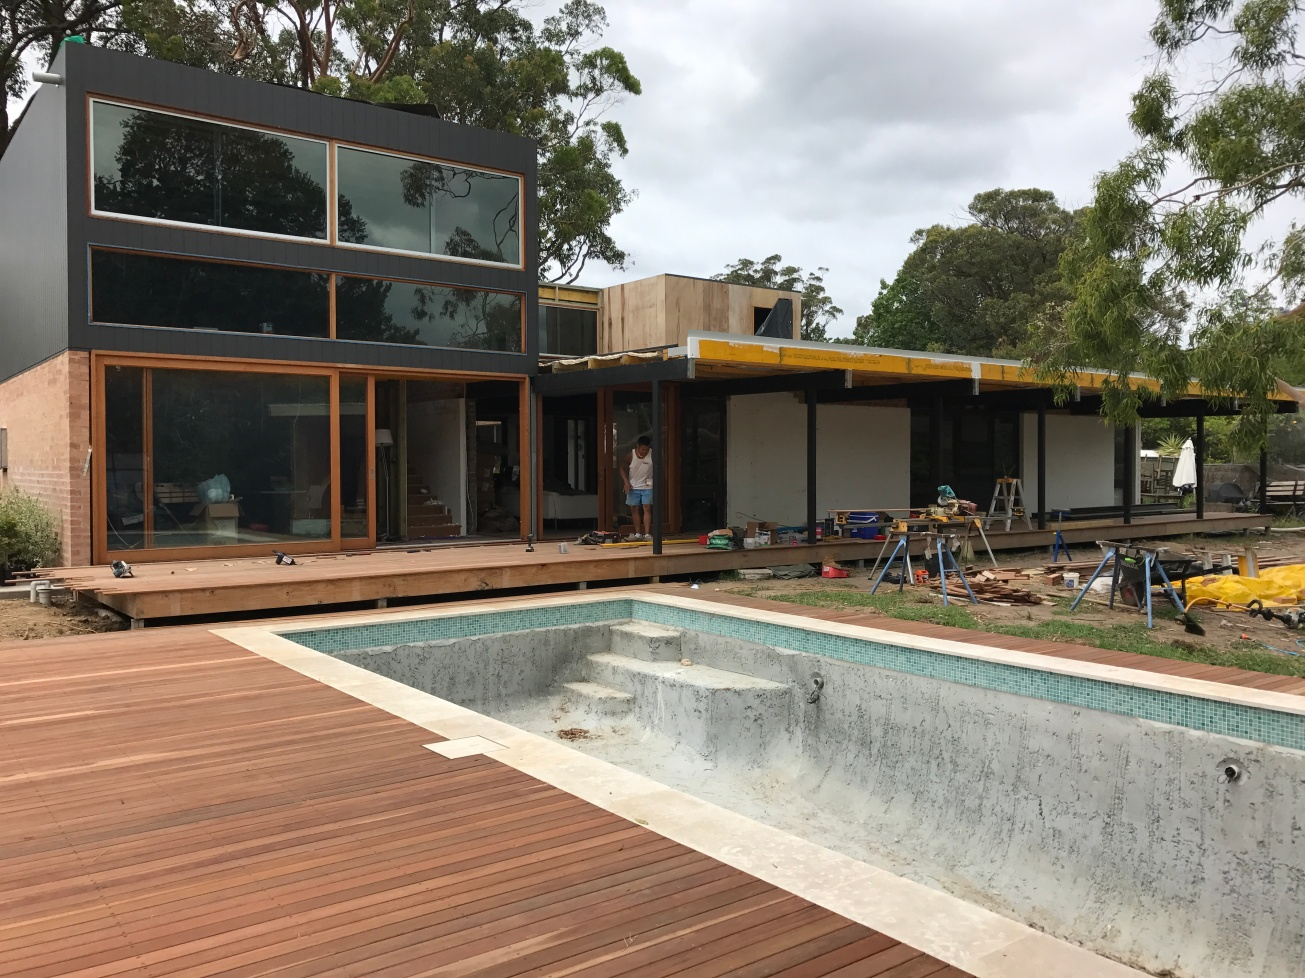 December 2016: These days, pools can't be filled until glass fencing is completed and certified. We took on an extra carpenter called Matt and together with Kitt, they have done an extraordinarily precise job of beautiful decking around the pool. After the glass fencing, the pool will be lined with a fine screed pebble in Arctic White so that the water will be truly blue, and then set. Filling the pool will help harden the surface. We decided against mosaic through out because those tiles are beautiful but expensive enough to feed a small African nation. We felt we didn't need it. Read more about the pool in the pool blog post.